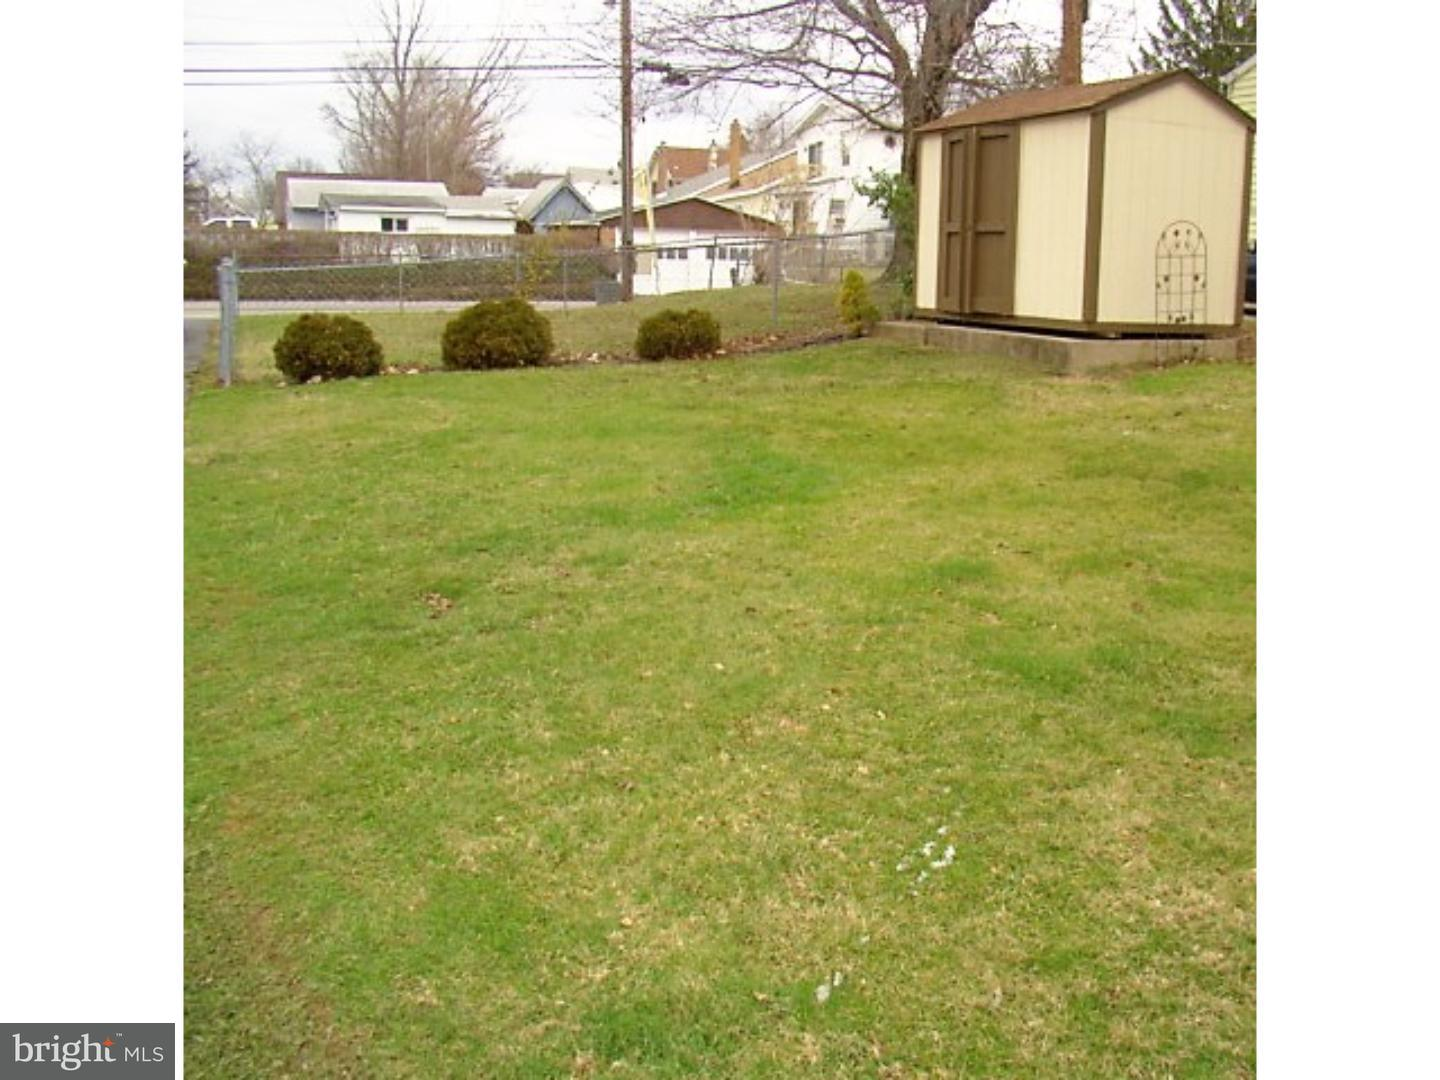 107 BEECHWOOD RD, BROOKHAVEN - Listed at $158,000, BROOKHAVEN